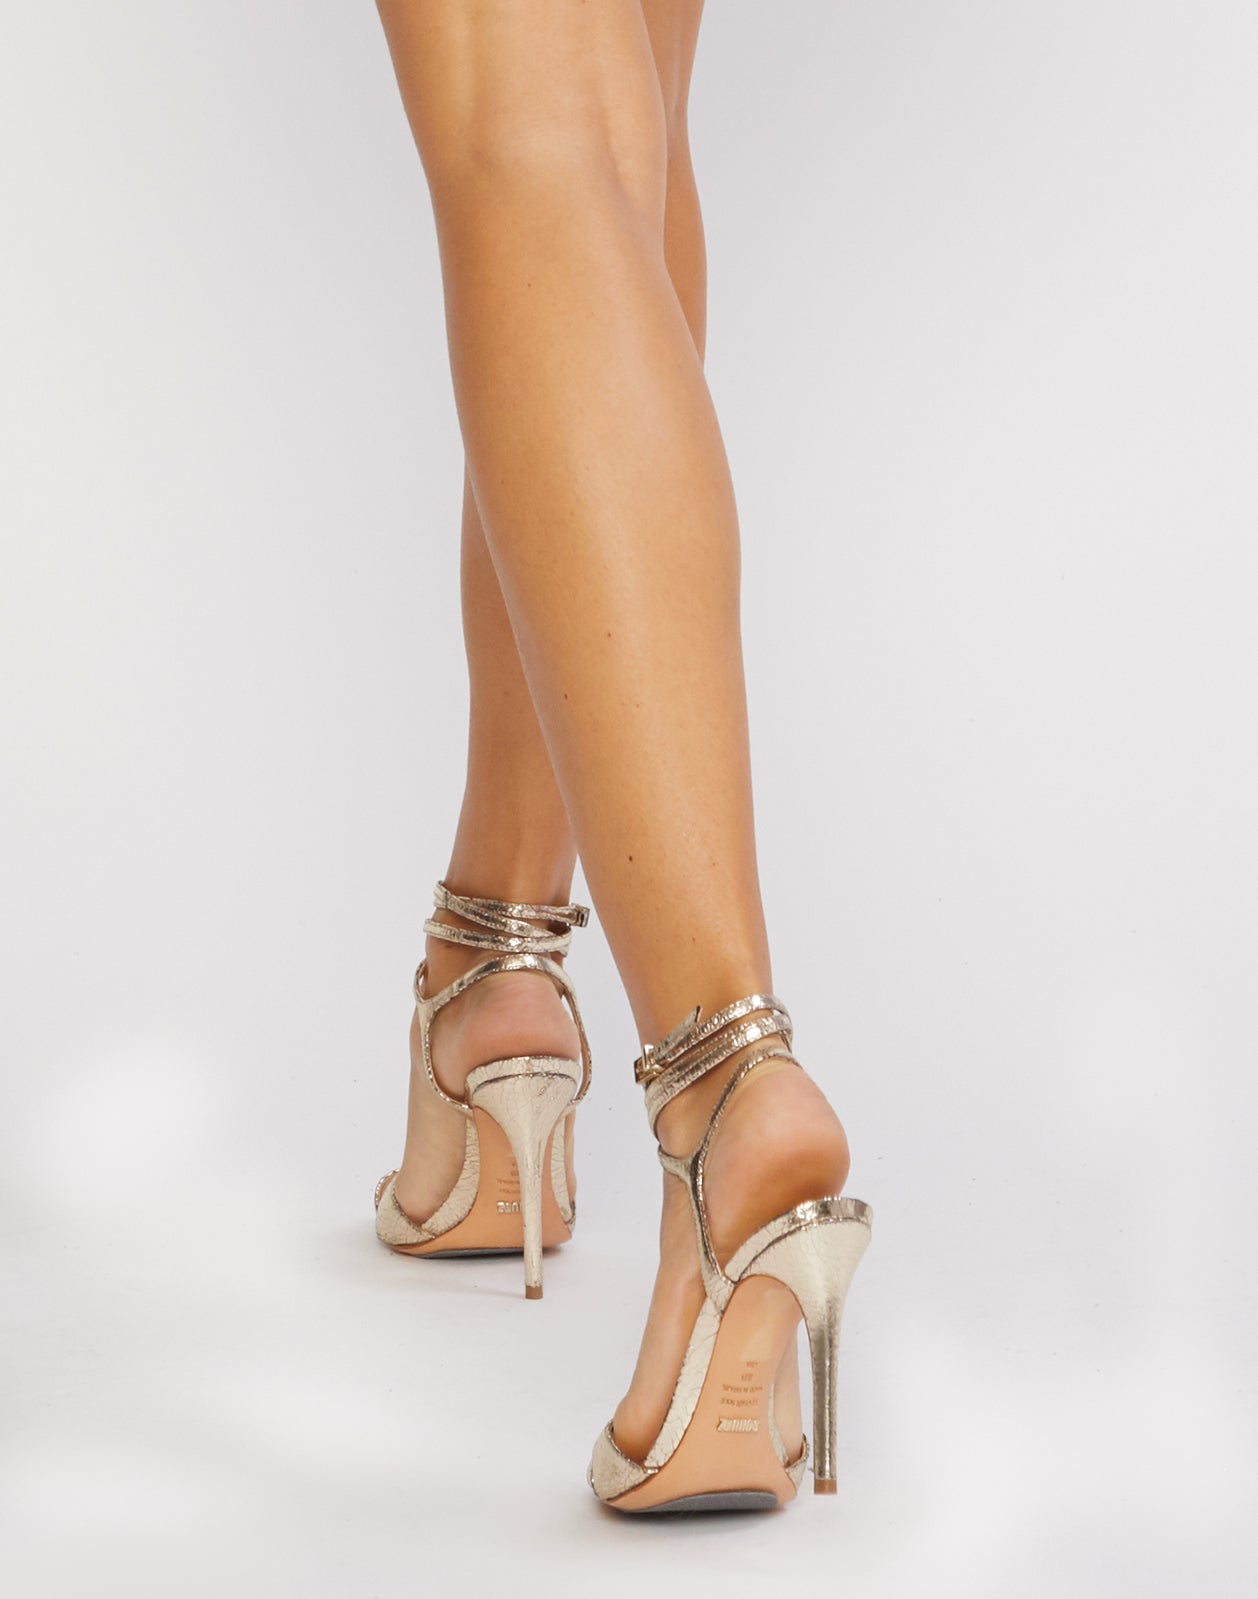 Back view of gold metallic stiletto heels with ankle straps